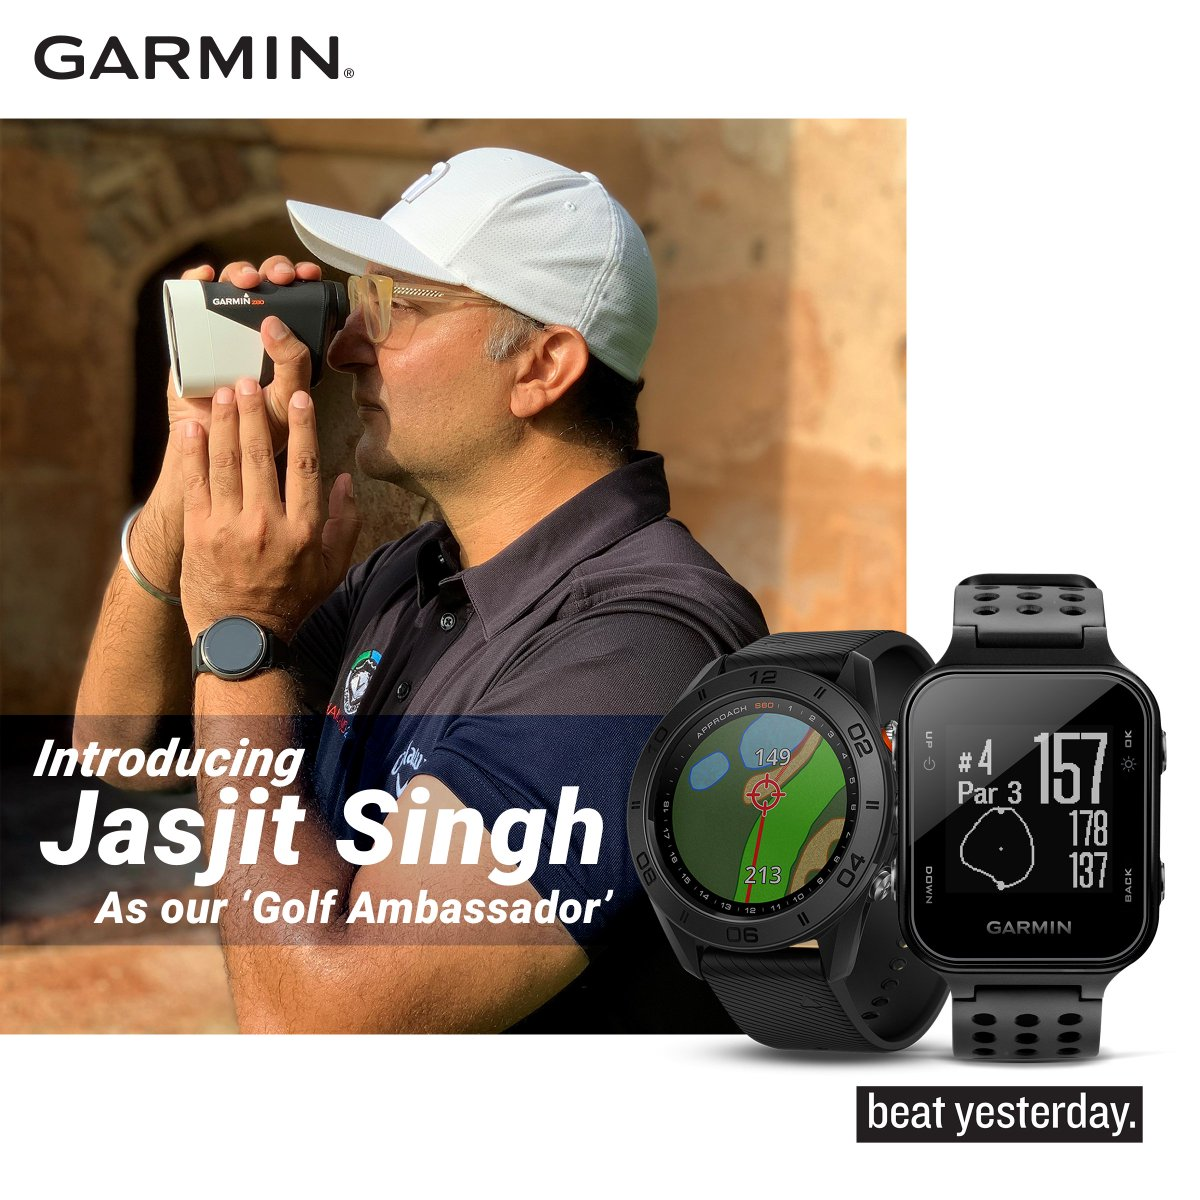 """Introducing you to our new """"Golf Ambassador"""" Jasjit Singh. With him we are preparing to serve the needs of golfers who wish to have smart gadgets for accuracy.  Featured Product Approach S20: https://t.co/se5xKo2yVc   #GarminIndia #BeatYesterdayIndia #Golf #sport https://t.co/PsZ6EXY5Ma"""